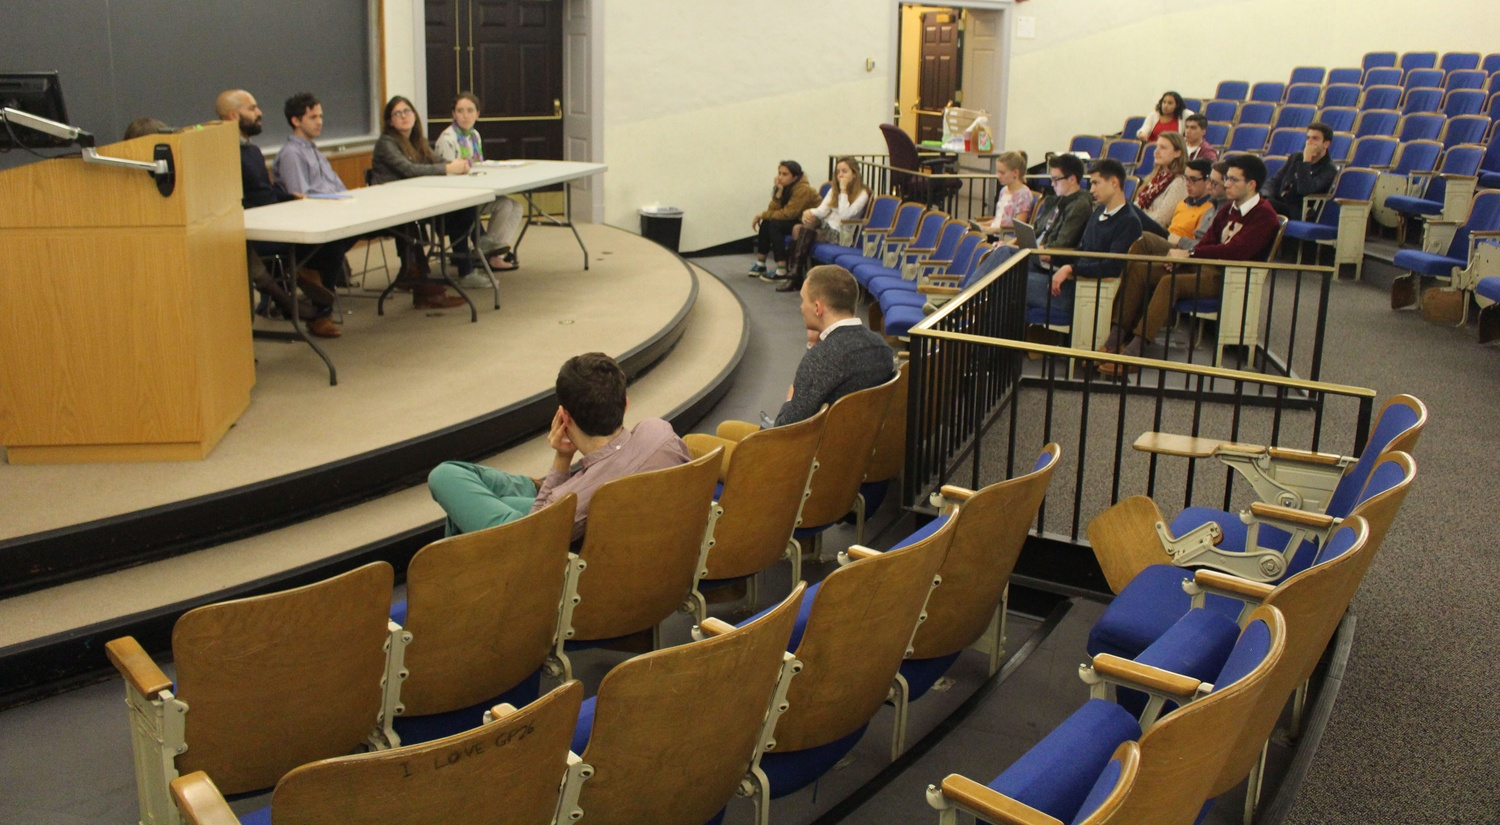 Students engage in a career panel about jobs in the humanities on Oct. 15. The consisted of five people: a professor, a postdoc, a graduate student, and two undergraduates.